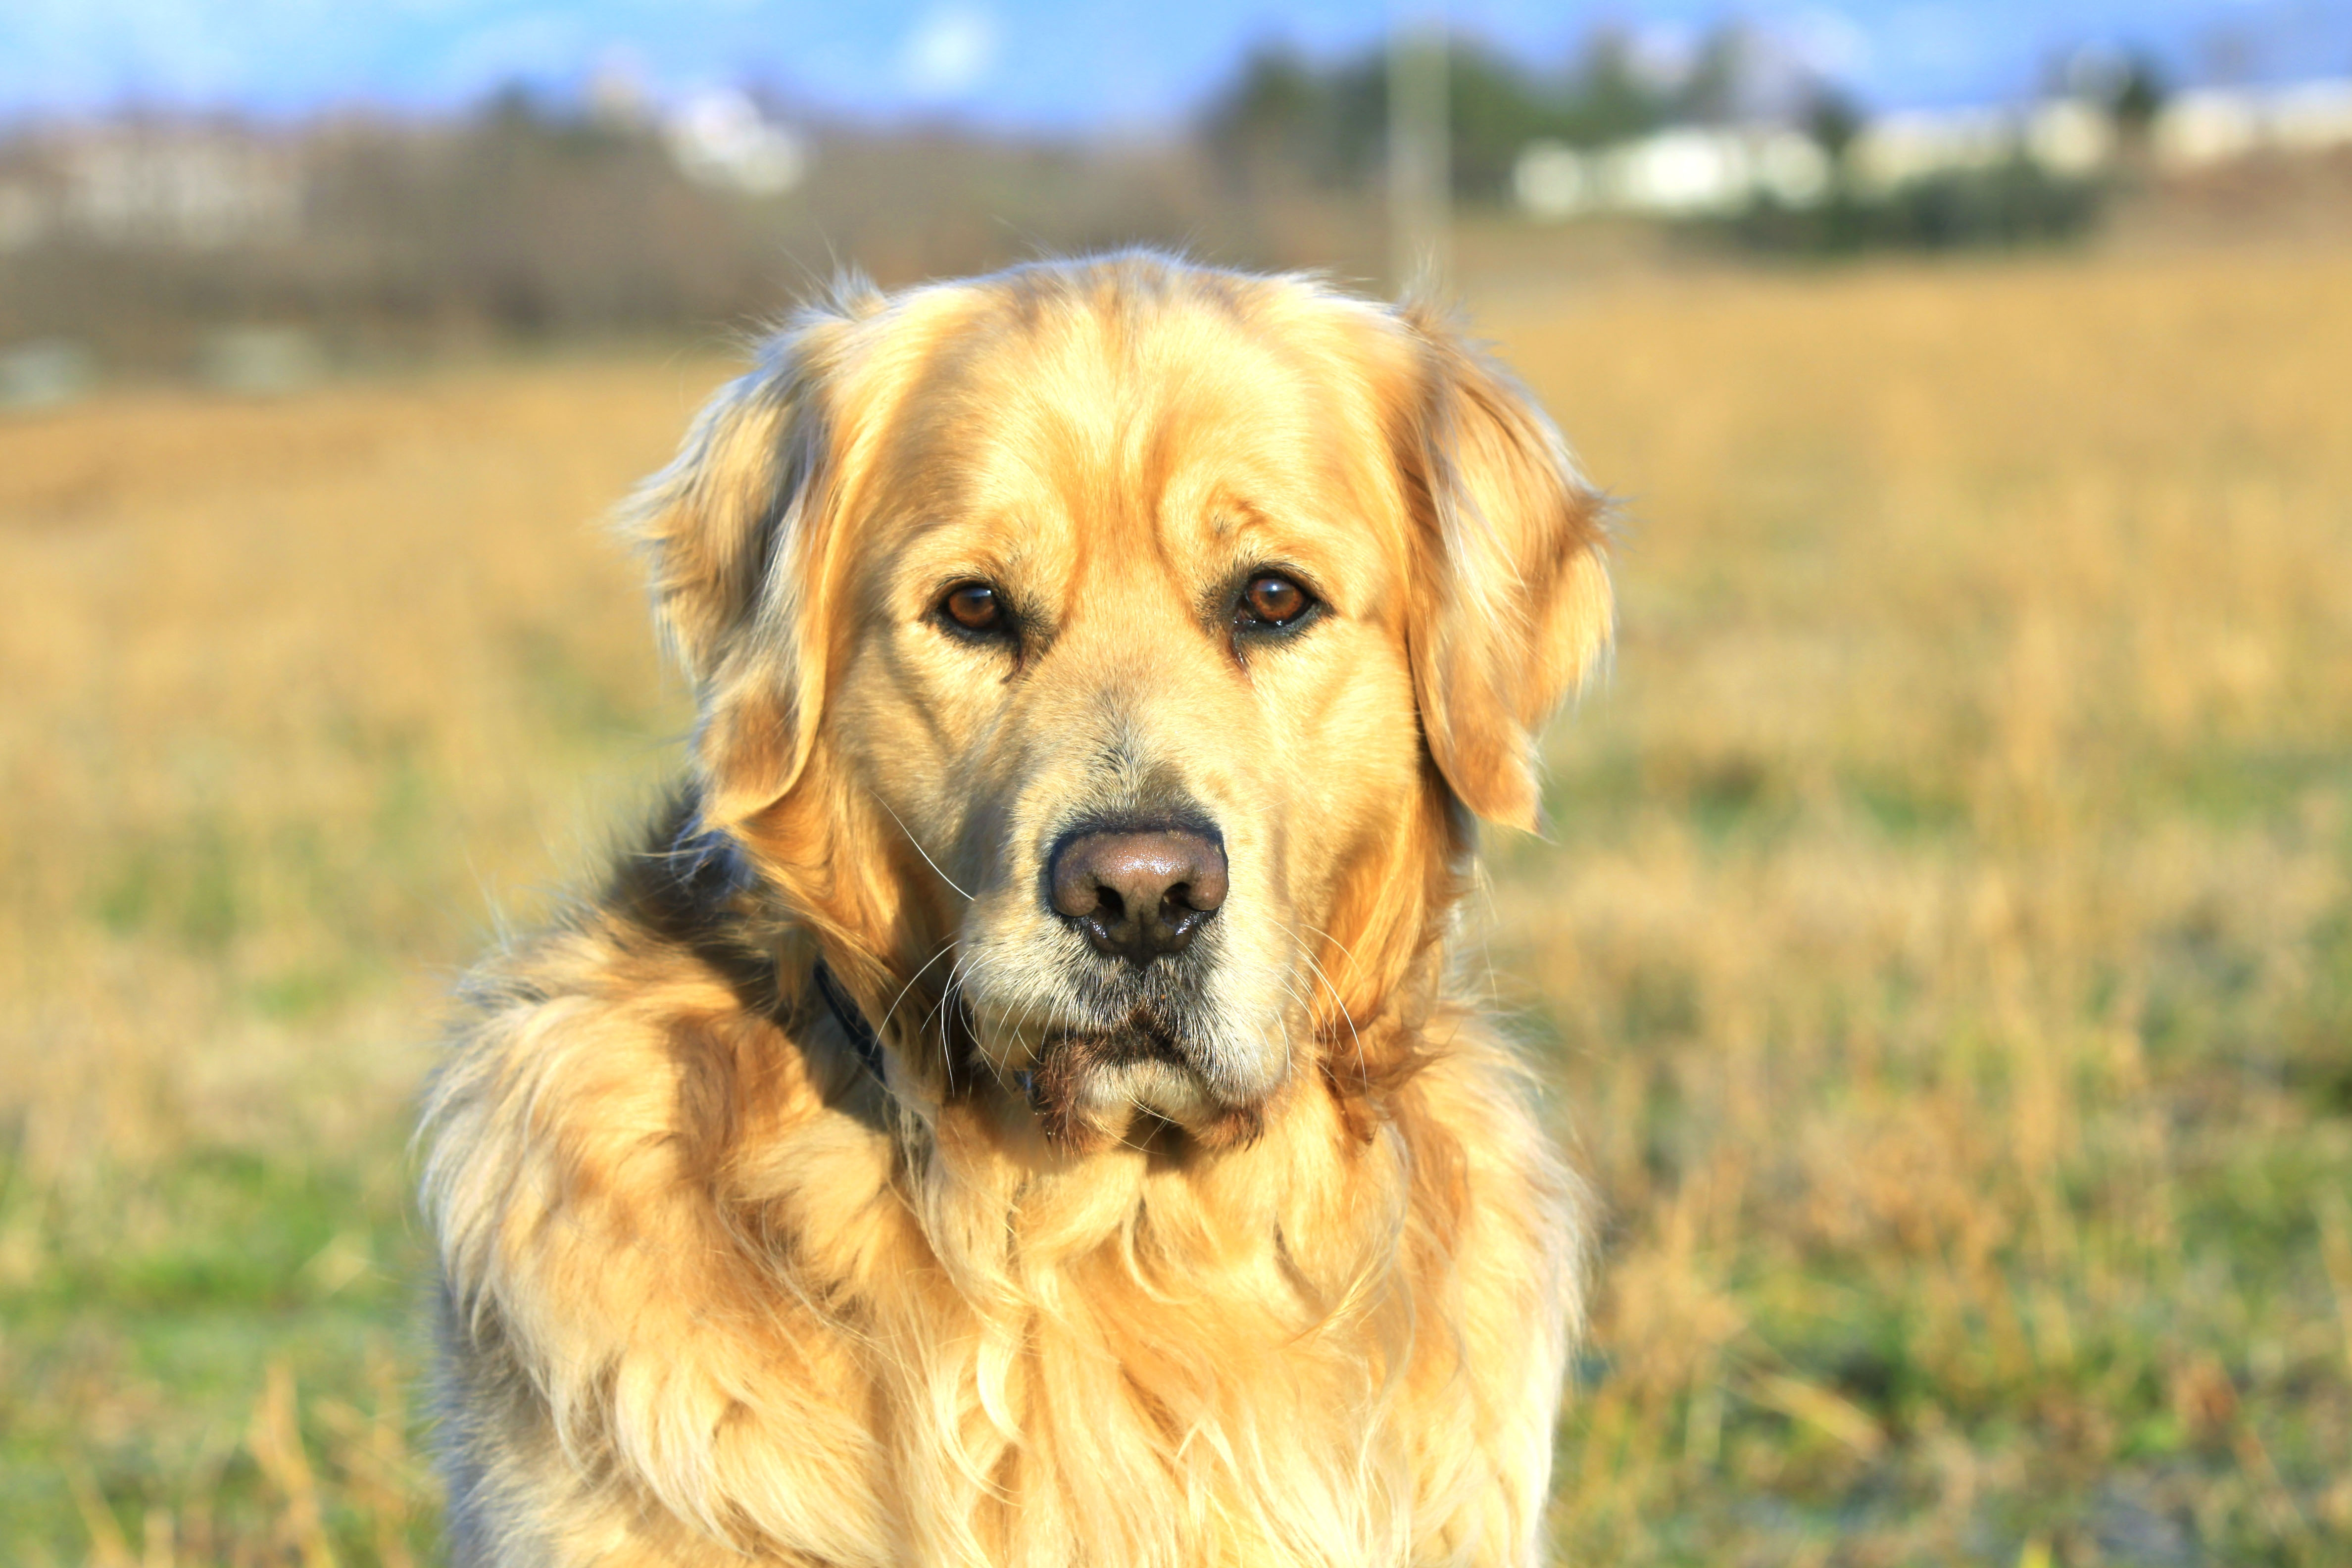 55559 download wallpaper Animals, Dog, Labrador, Muzzle, Collar screensavers and pictures for free